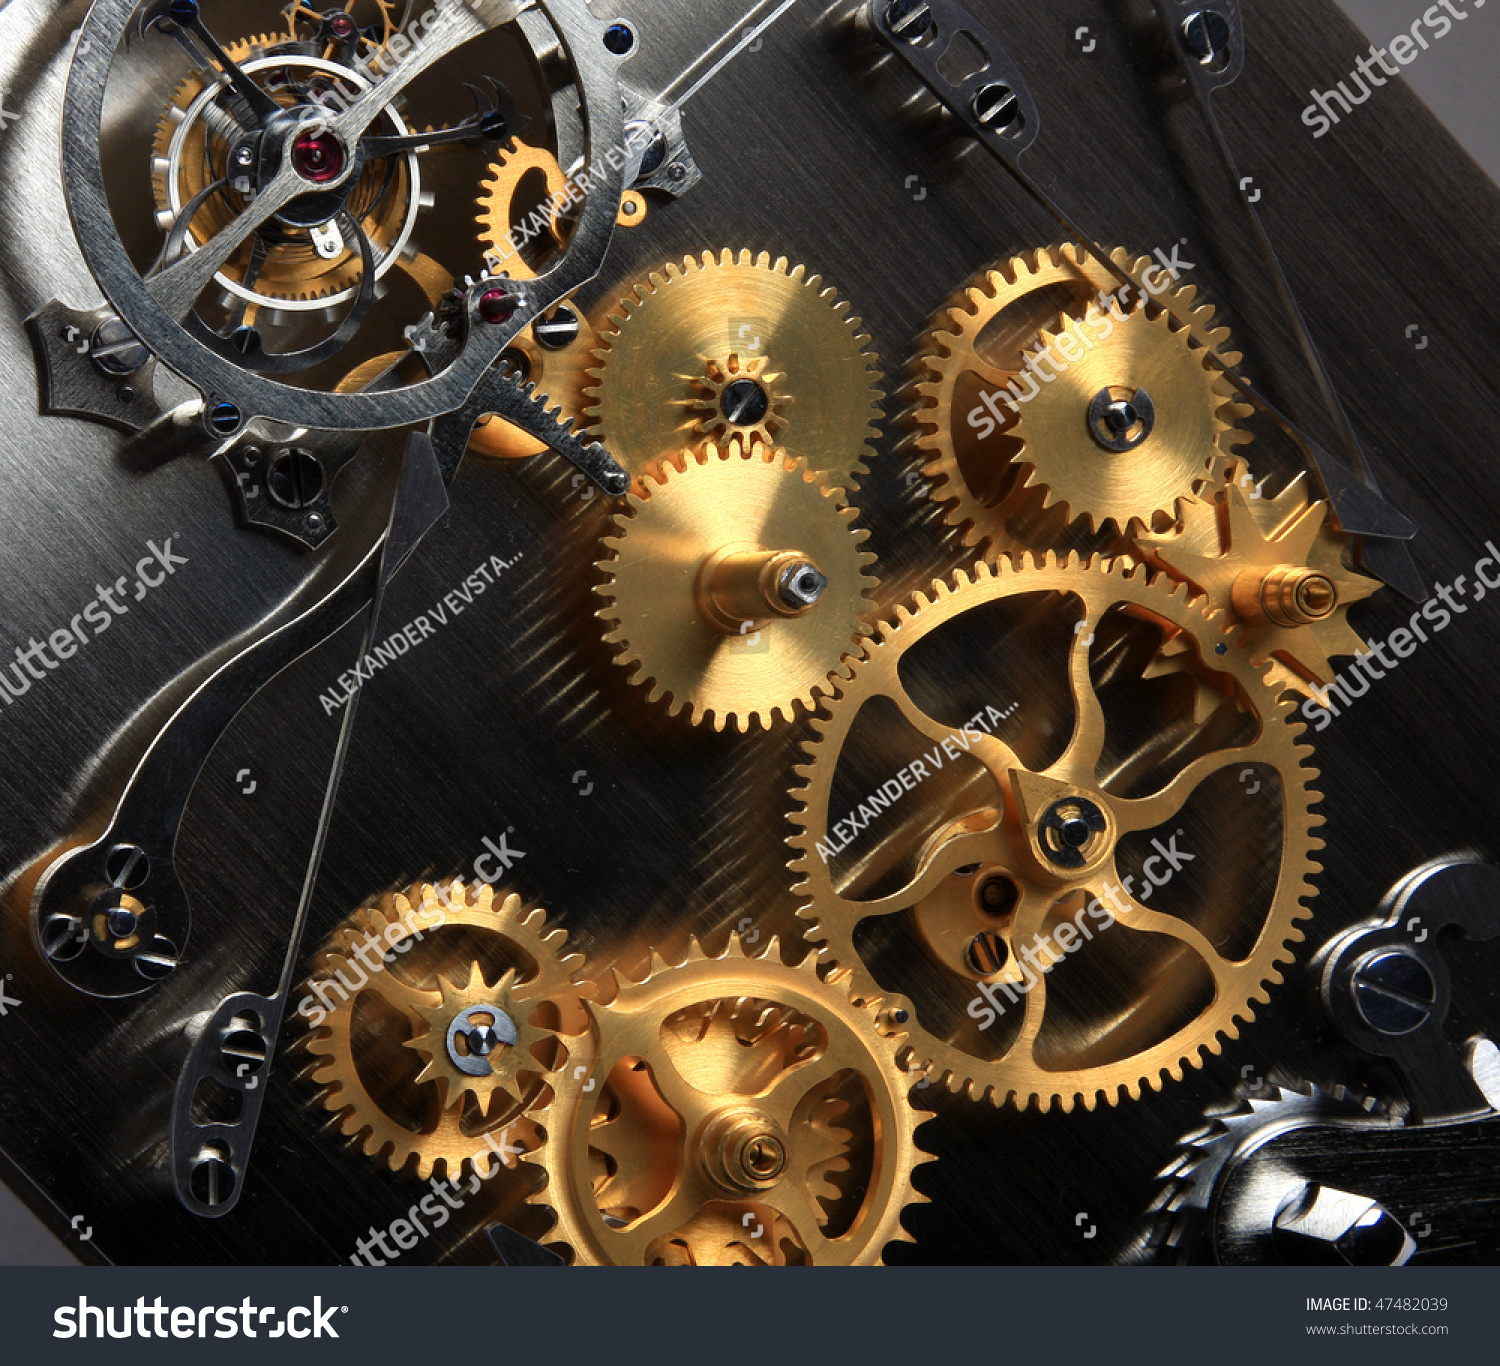 Related Keywords Amp Suggestions For Mechanical Clock